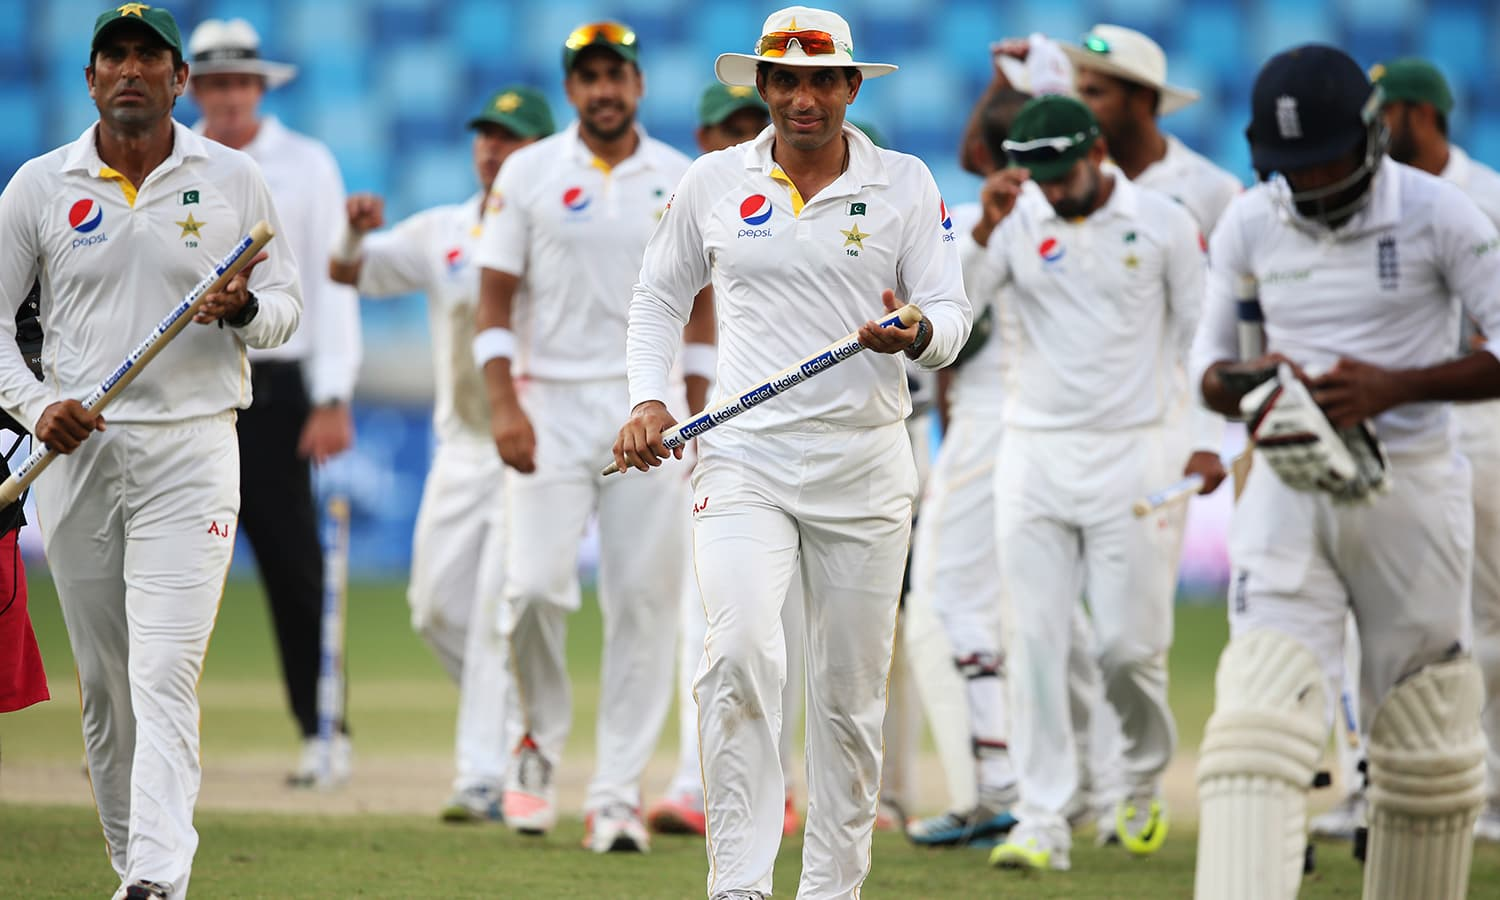 Younis Khan and Misbah-ul-Haq walk with stumps as they leave the green. — AP